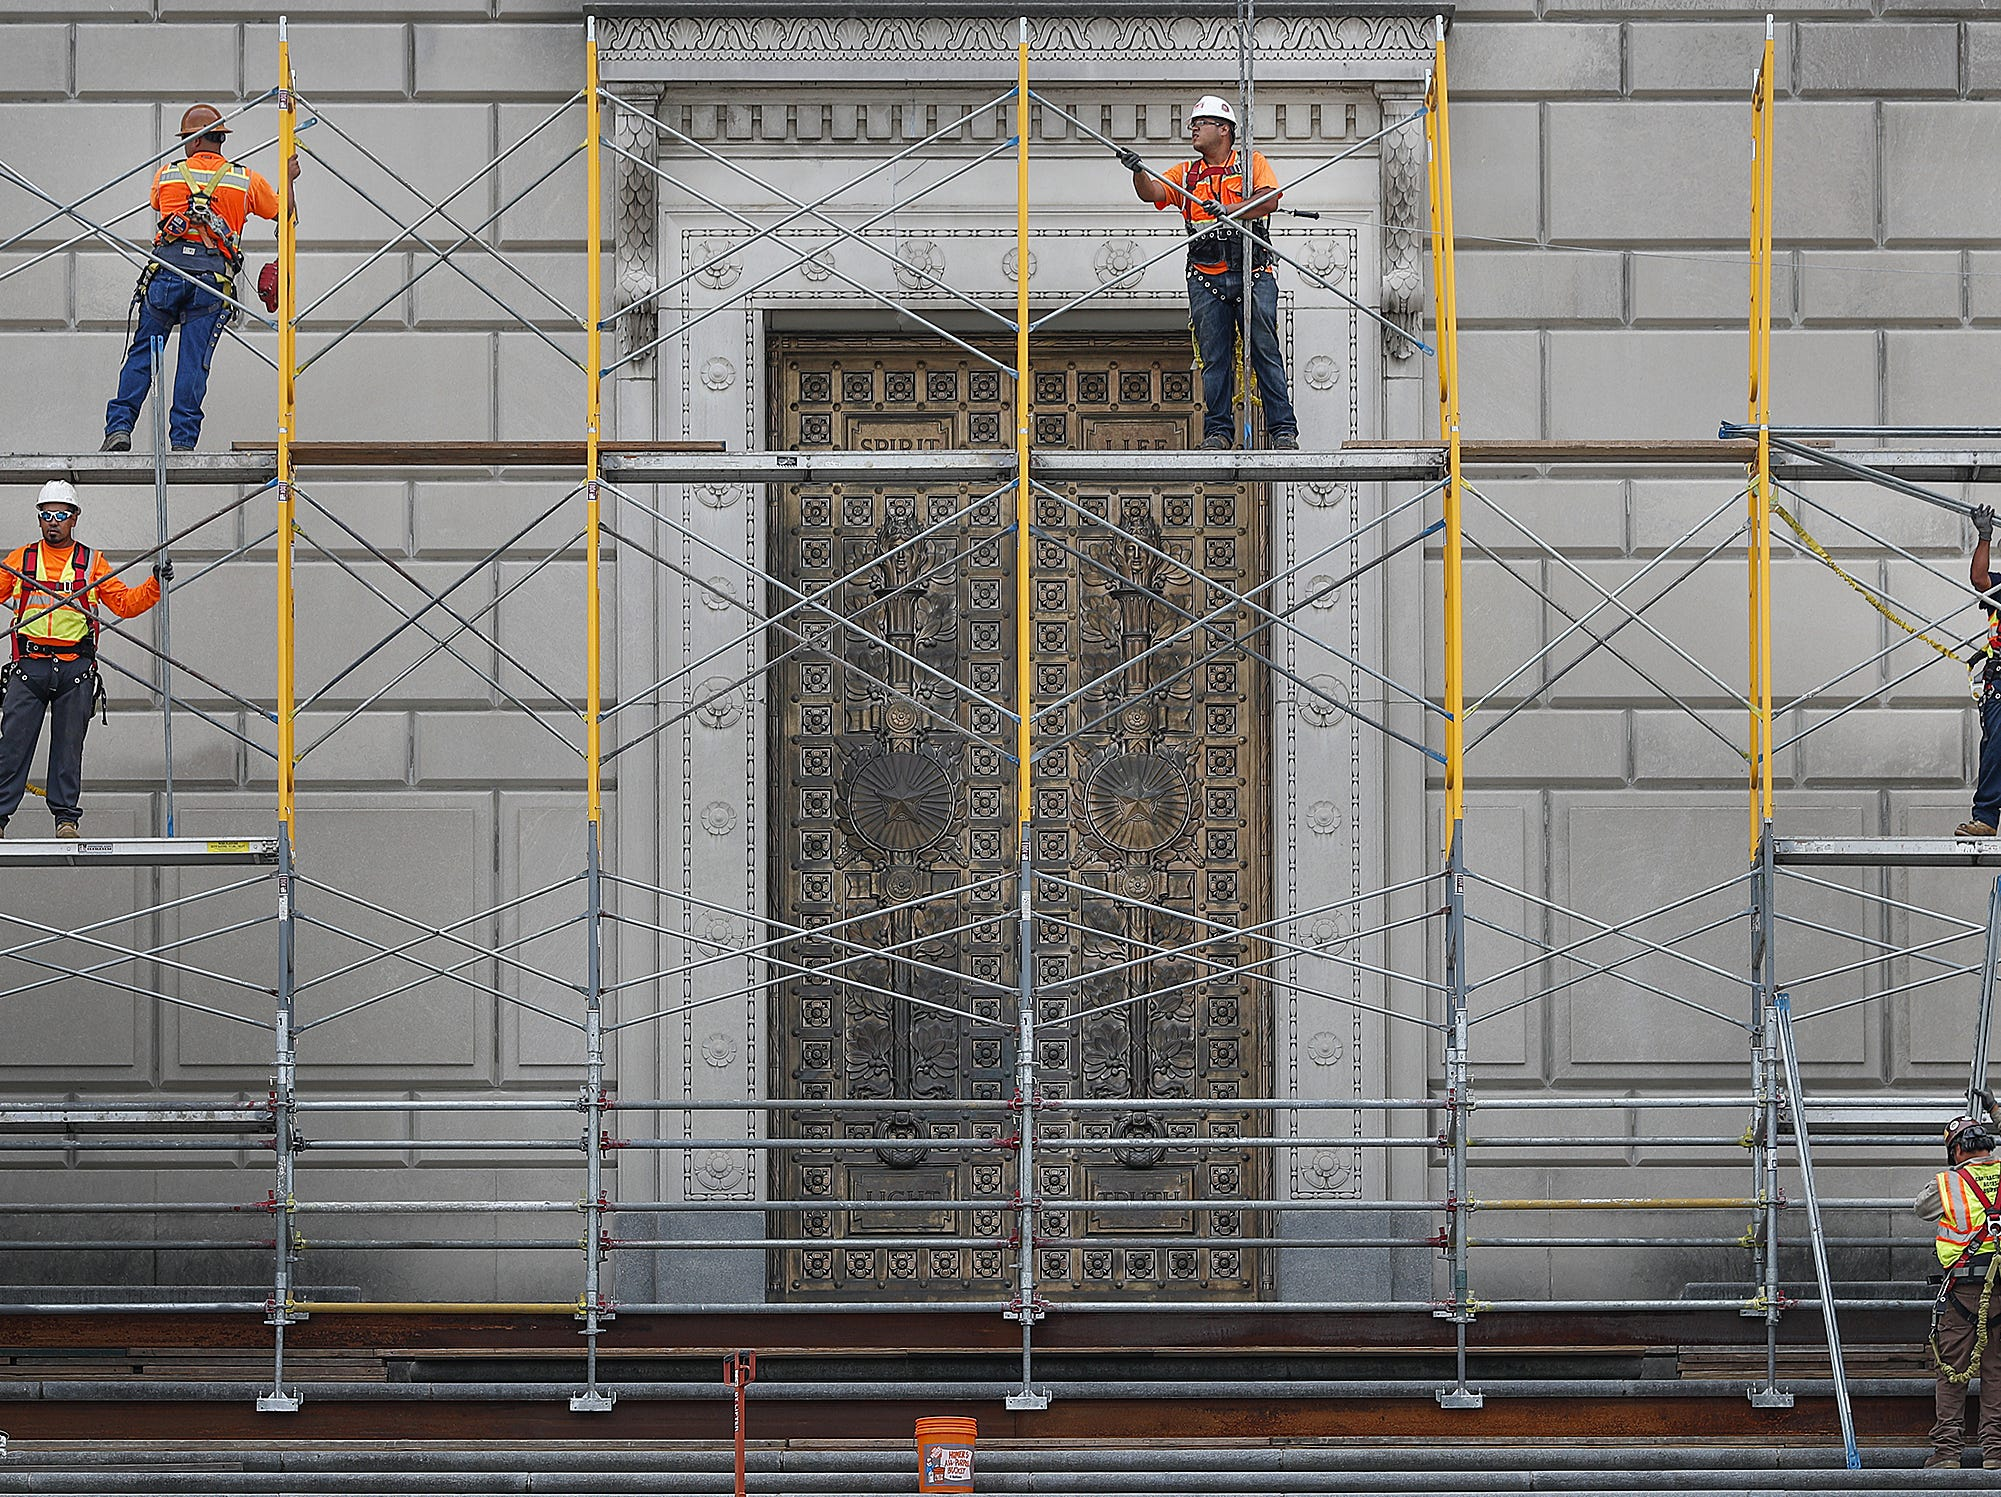 Workers assemble scaffolding around the Indiana War Memorial building for the installation of a new $2.2 million granite and copper roof on the pyramidal dome, or ziggurat, on Monday. Brig. Gen. J. Stewart Goodwin, executive director of Indiana War Memorials Commission, said the project will be completed in November, at which time runners may resume climbing the stairs of the building.